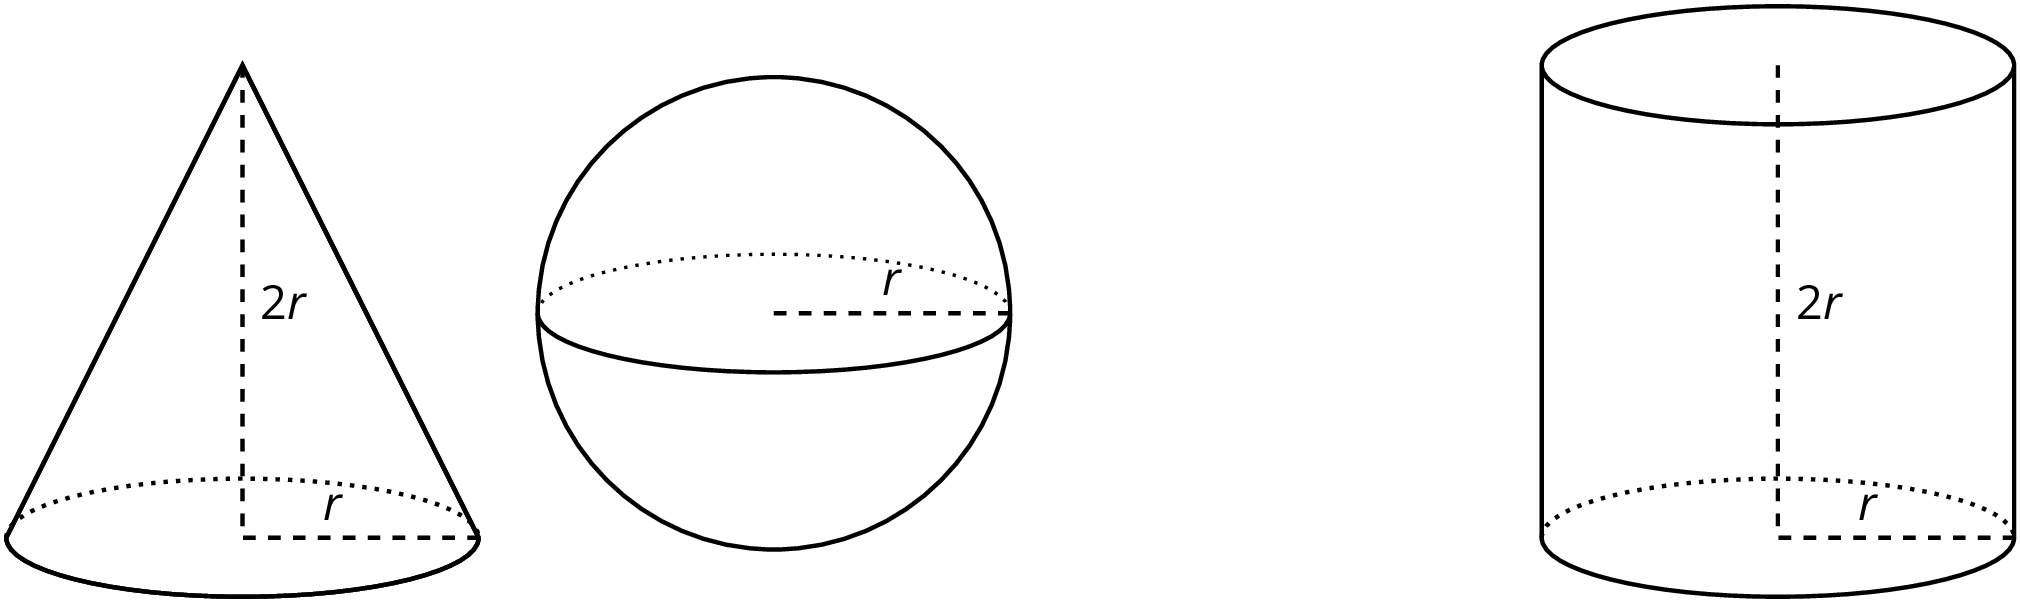 """A cone, a sphere and a cylinder. The height of the cone is labeled """"2 r"""" and the radius of the cone is labeled """"r."""" The radius of the sphere is labeled """"r."""" The height of the cylinder is labeled """"2 r"""" and the radius of the cylinder is labeled """"r."""""""